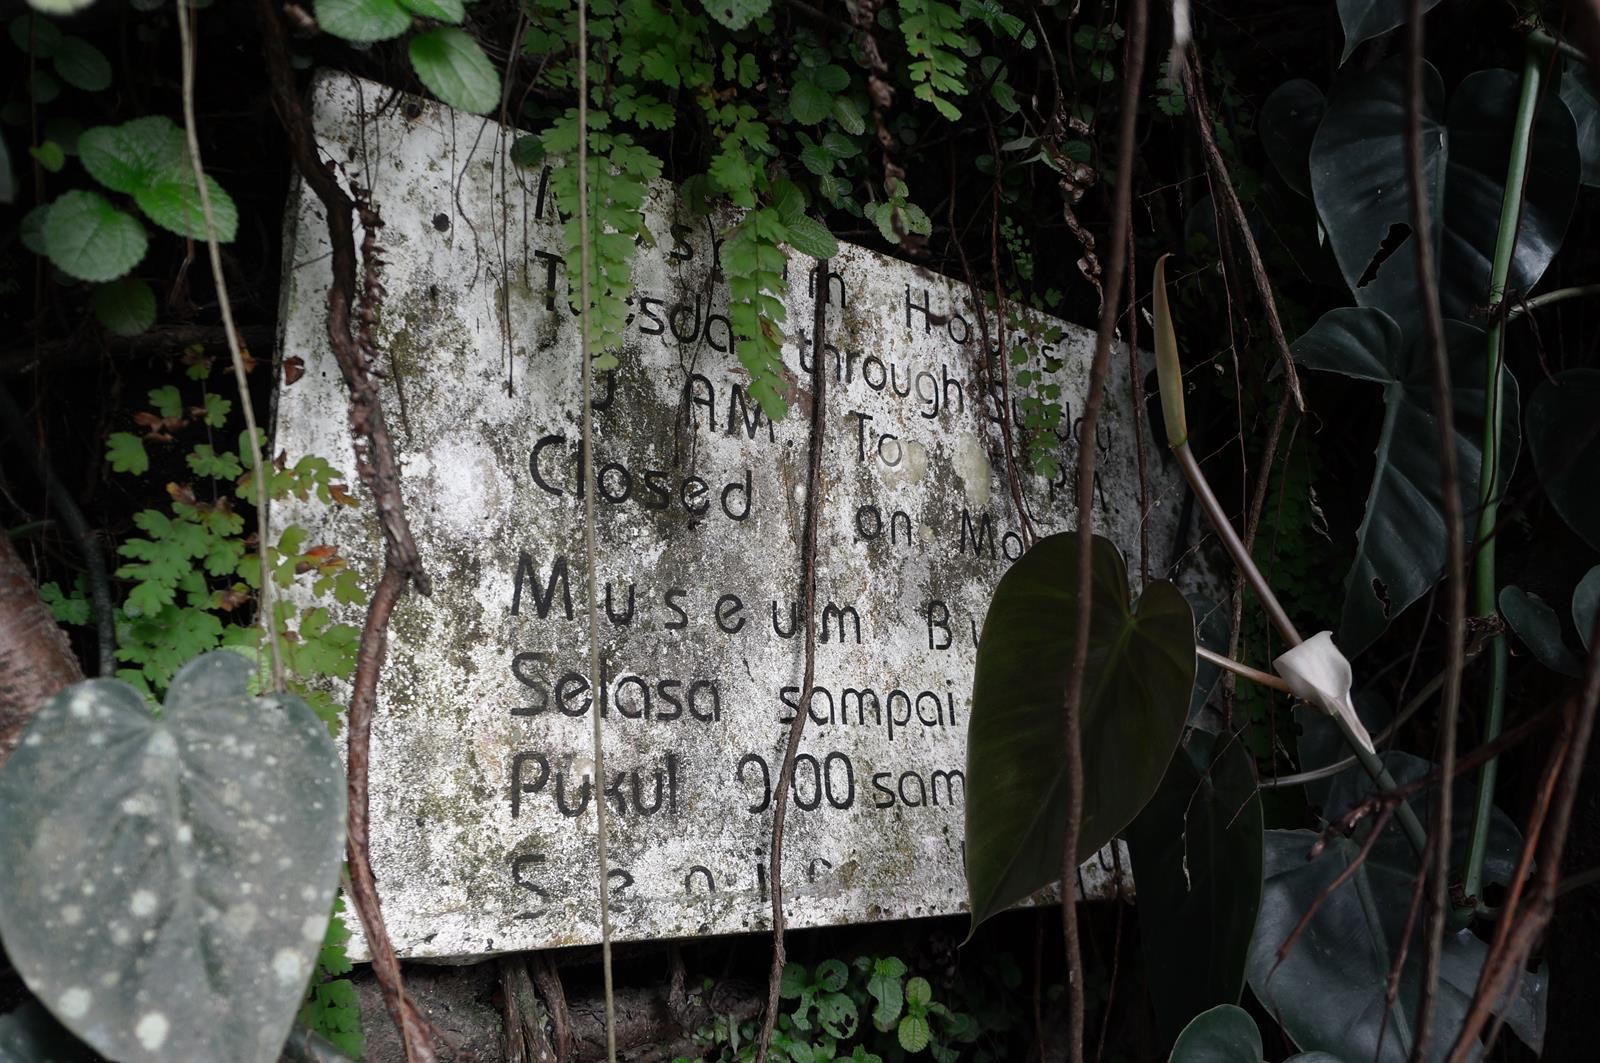 Somehow this board take my attention. This was placed in front of Ullen Sentalu Museum